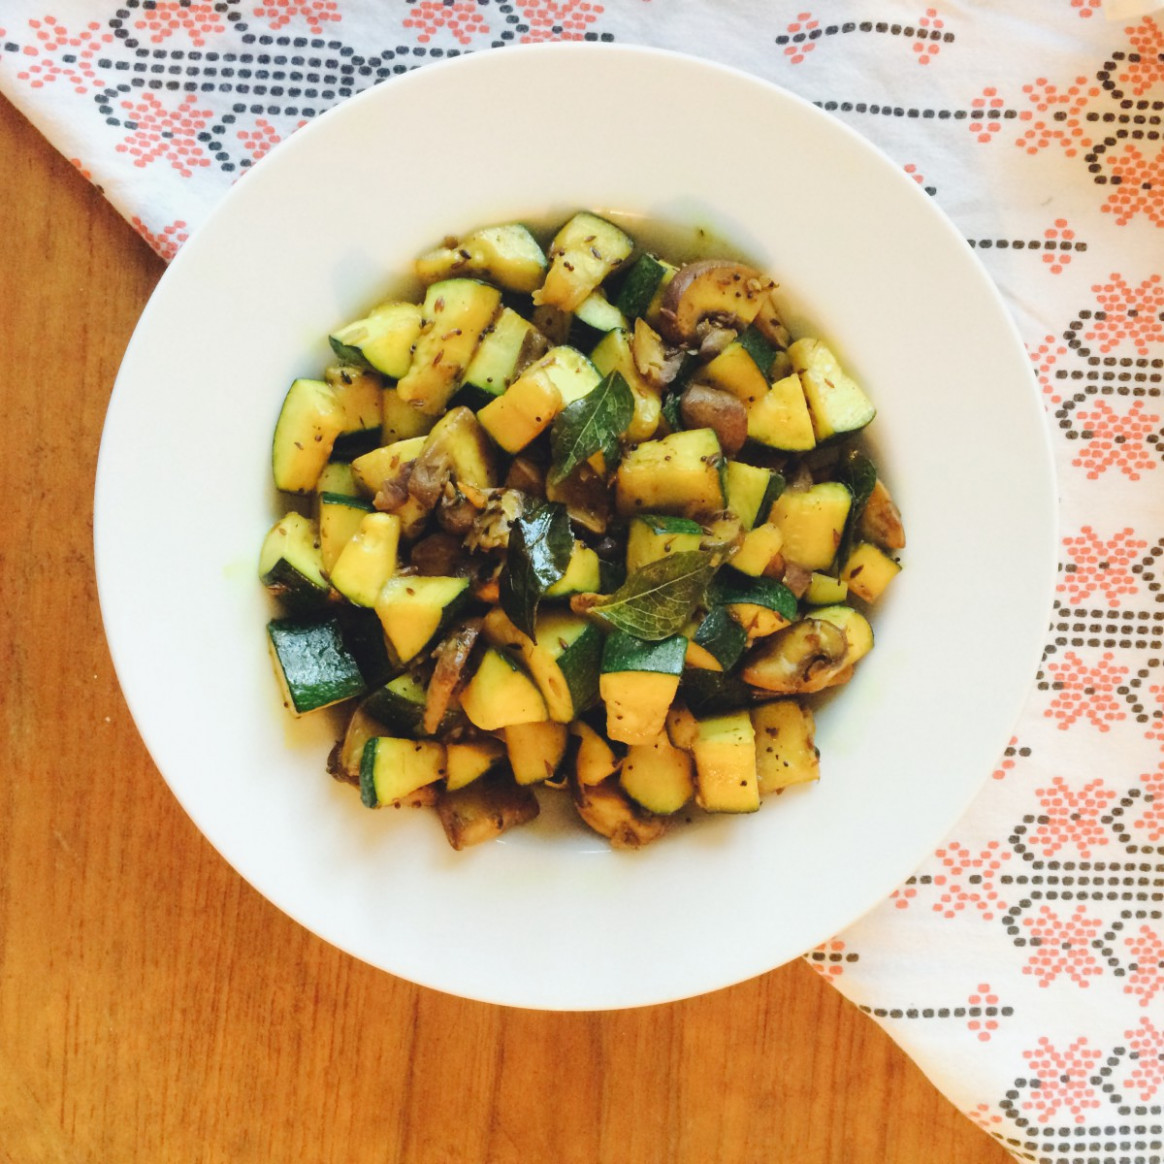 15 Spices & A Veggie, Simple Ayurvedic Stir Fry | Chit.chaat